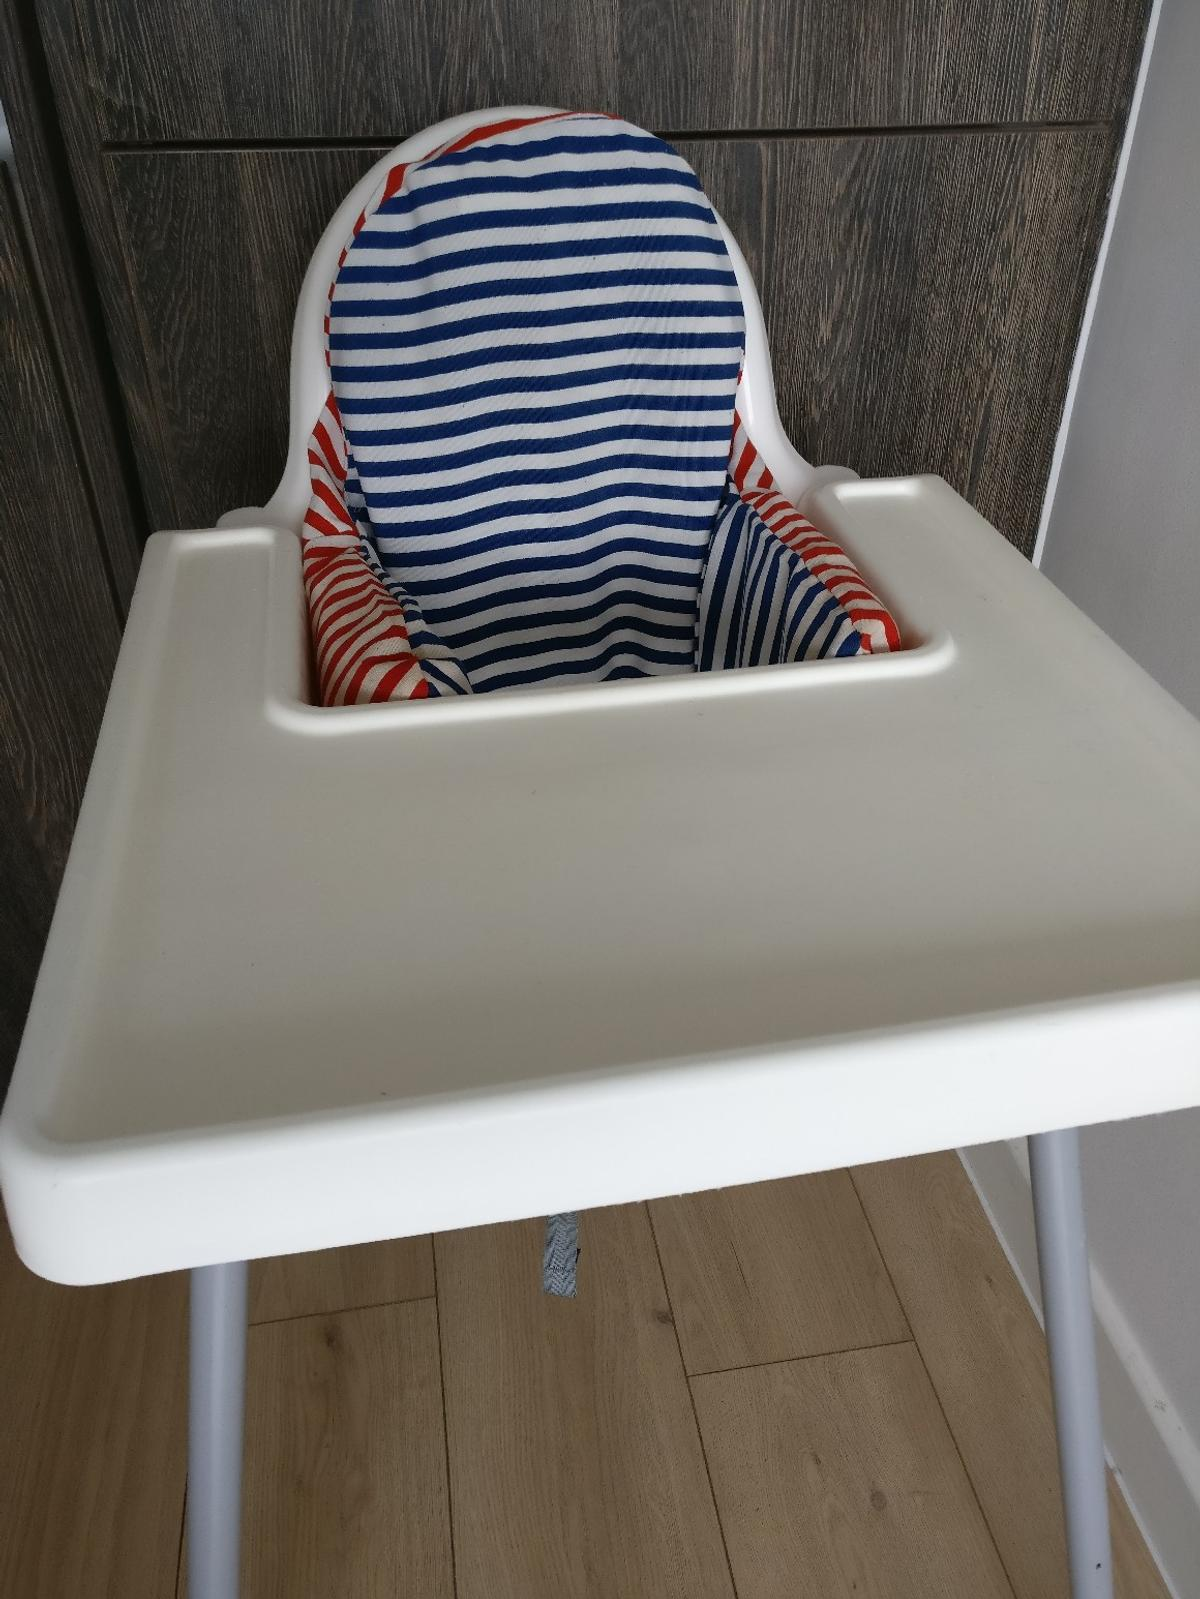 Peachy Ikea Baby High Chair With Cushion And Cover In Cm1 Caraccident5 Cool Chair Designs And Ideas Caraccident5Info